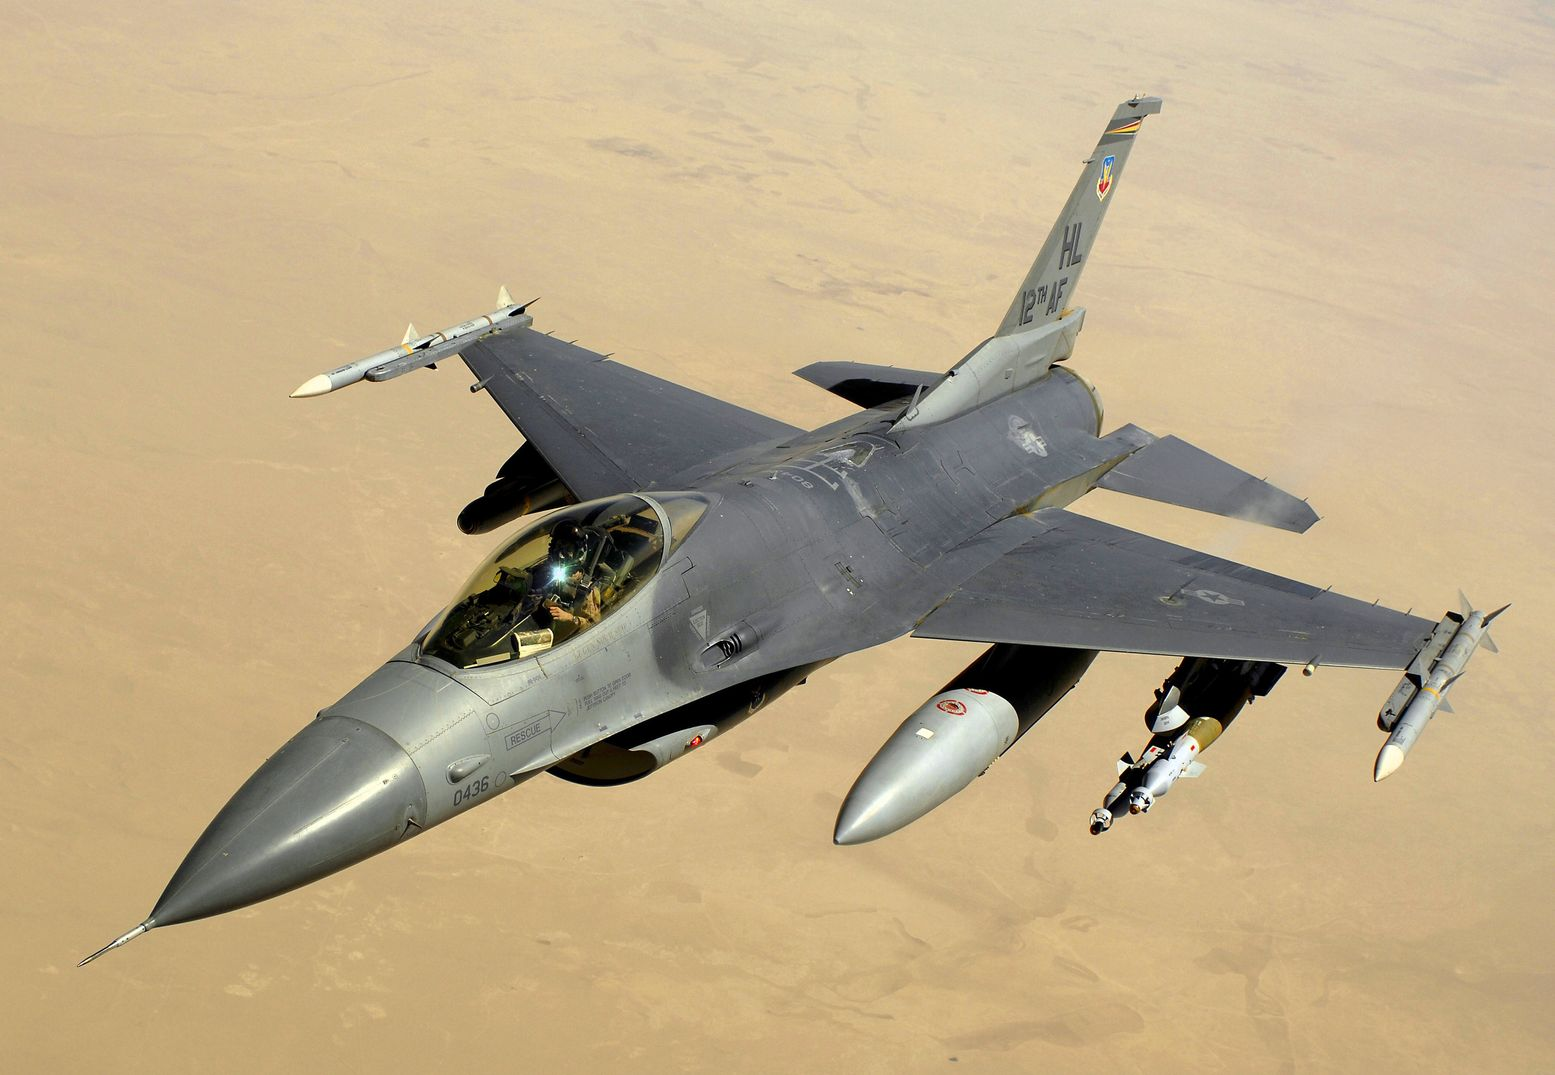 Turkey Stockpiled F-16 Parts Ahead of Getting the Russian S-400